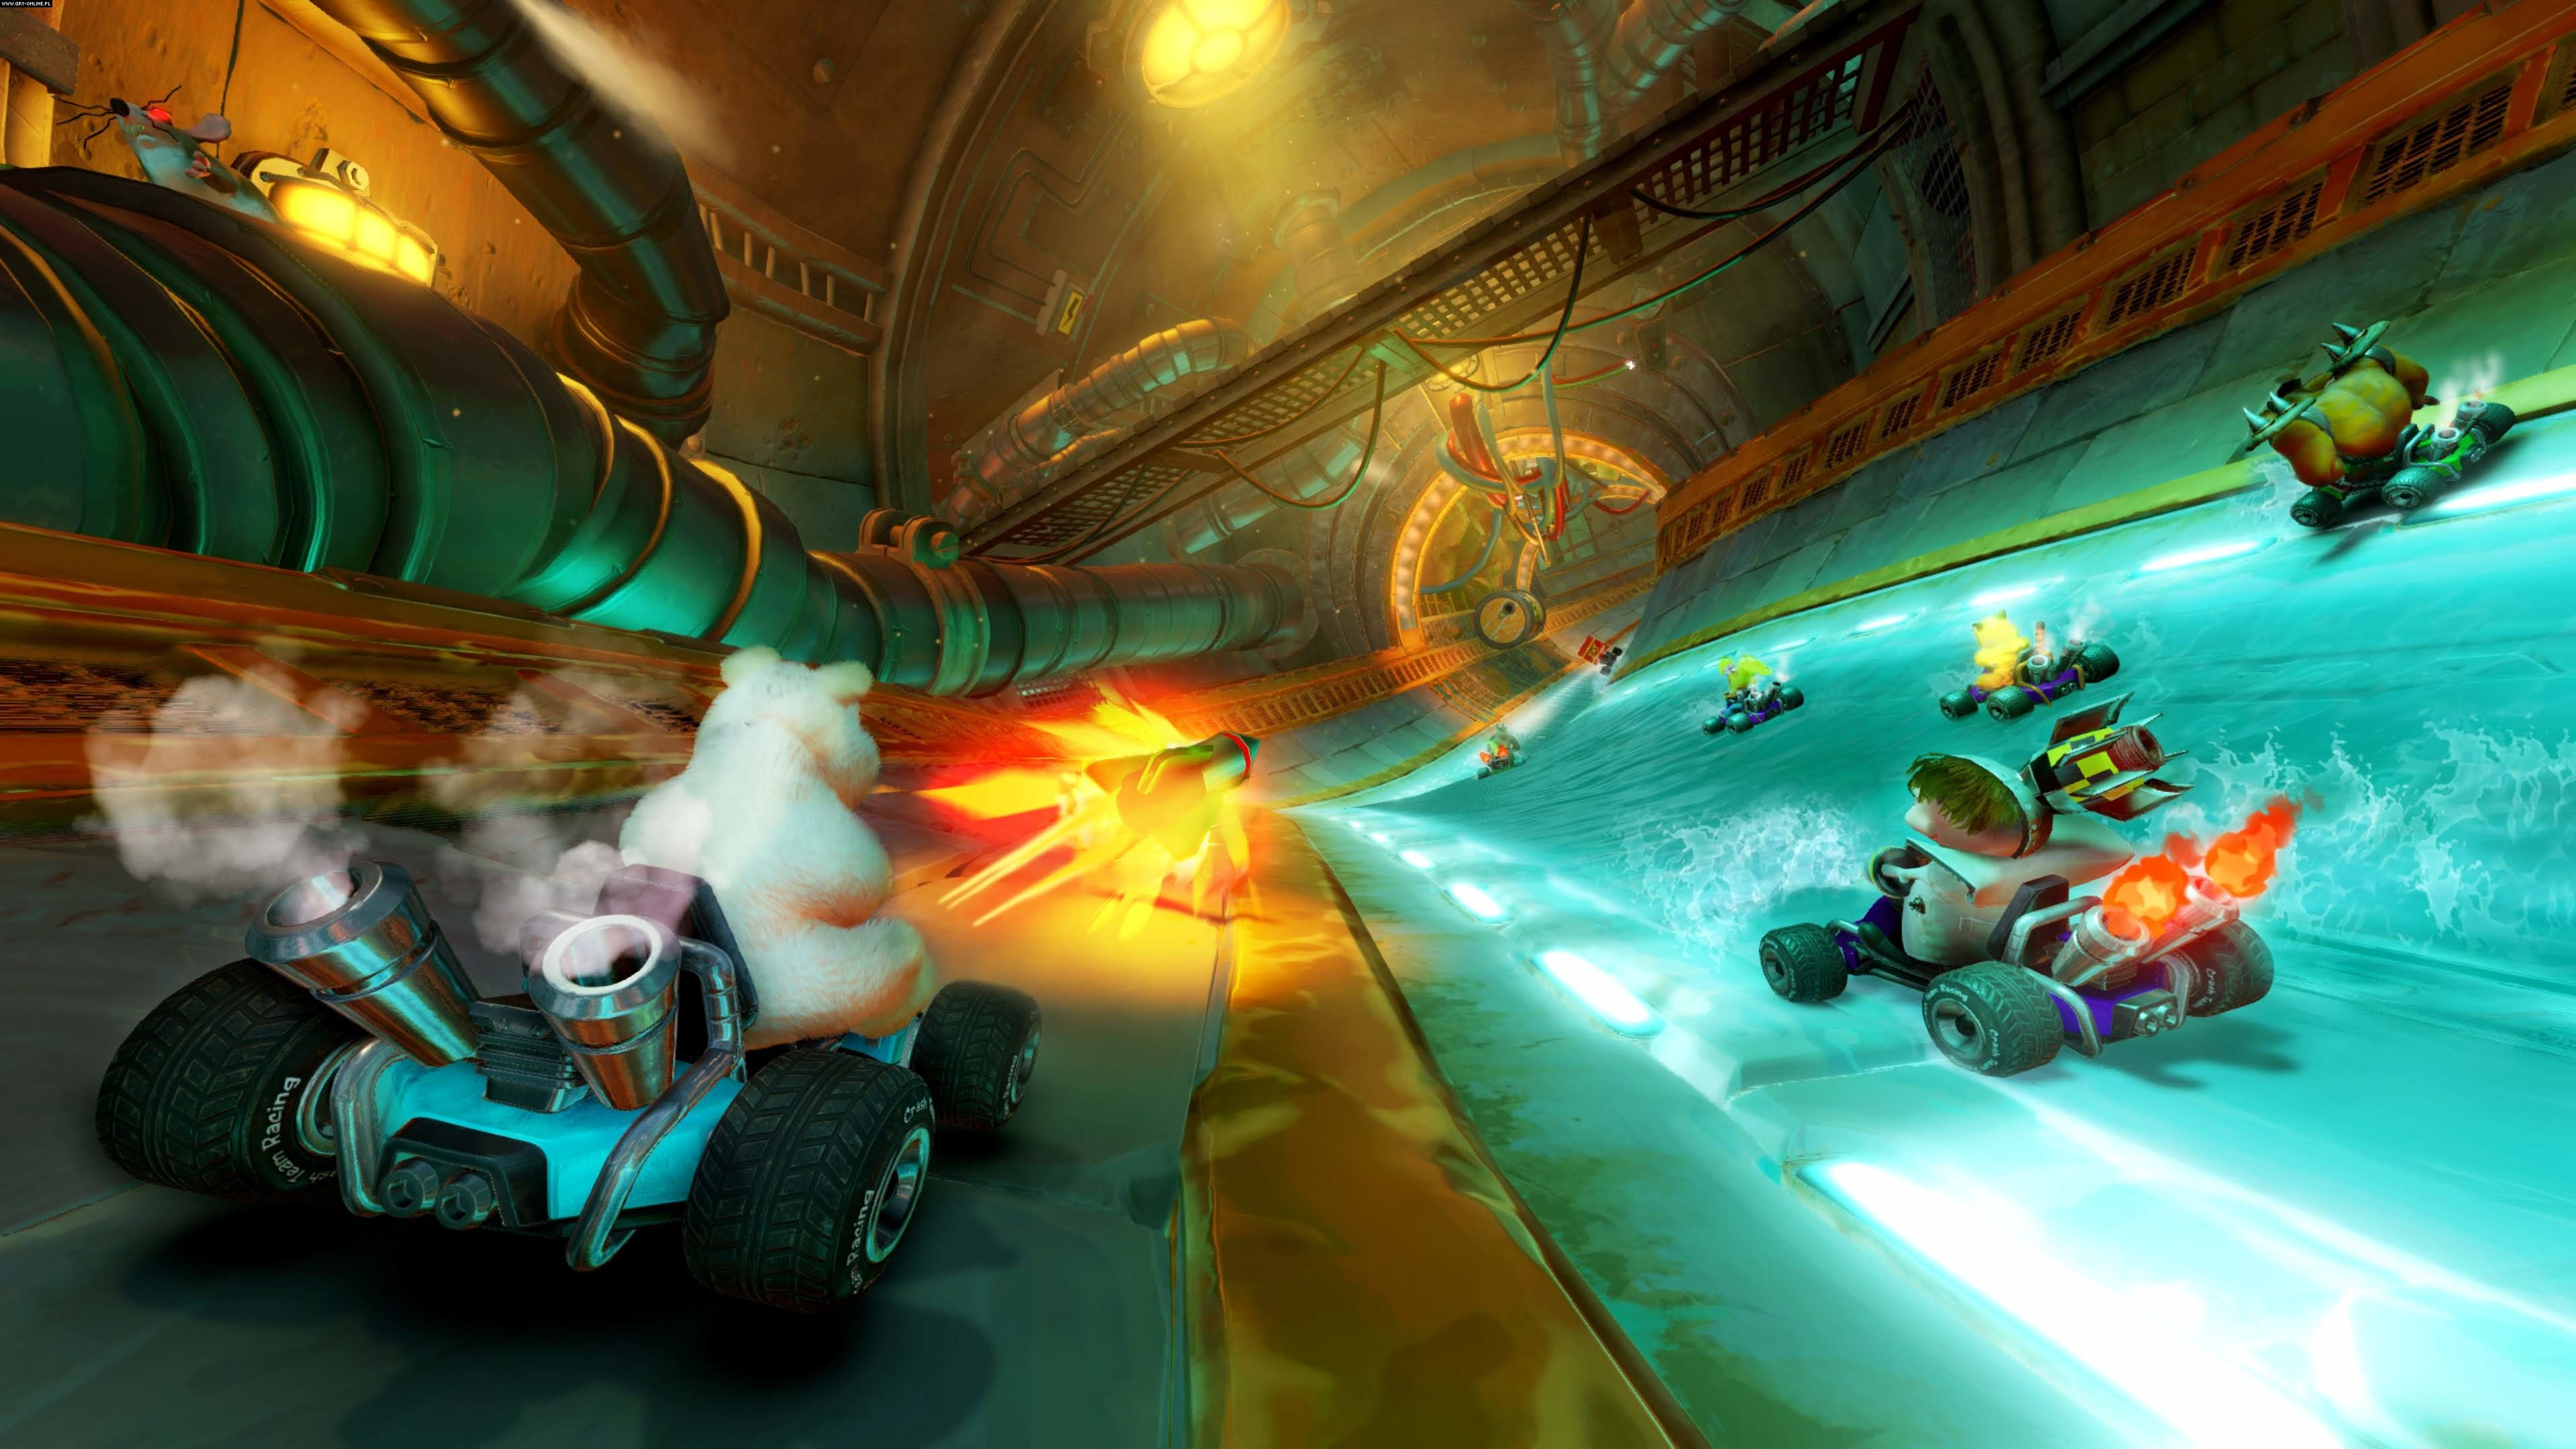 Crash Team Racing Nitro-Fueled PS4 Games Image 3/24, Beenox Inc., Activision Blizzard